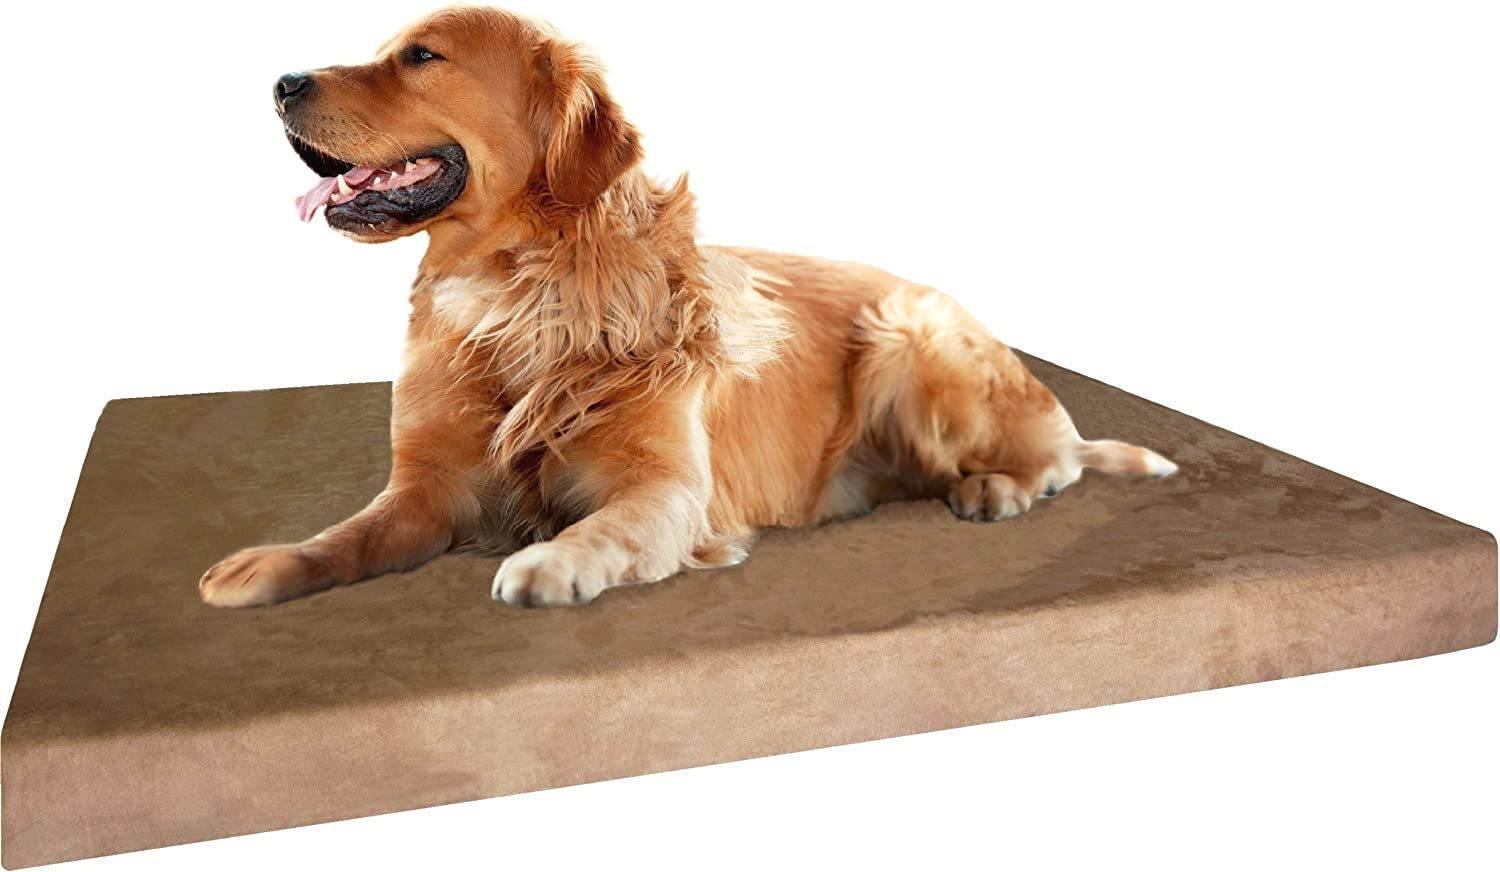 Dogbed4less Memory Foam Dog Bed | Orthopedic Ultra Plush Mattress, Thick Waterproof Lining and Machine Washable Cover, Multiple Sizes/Colors